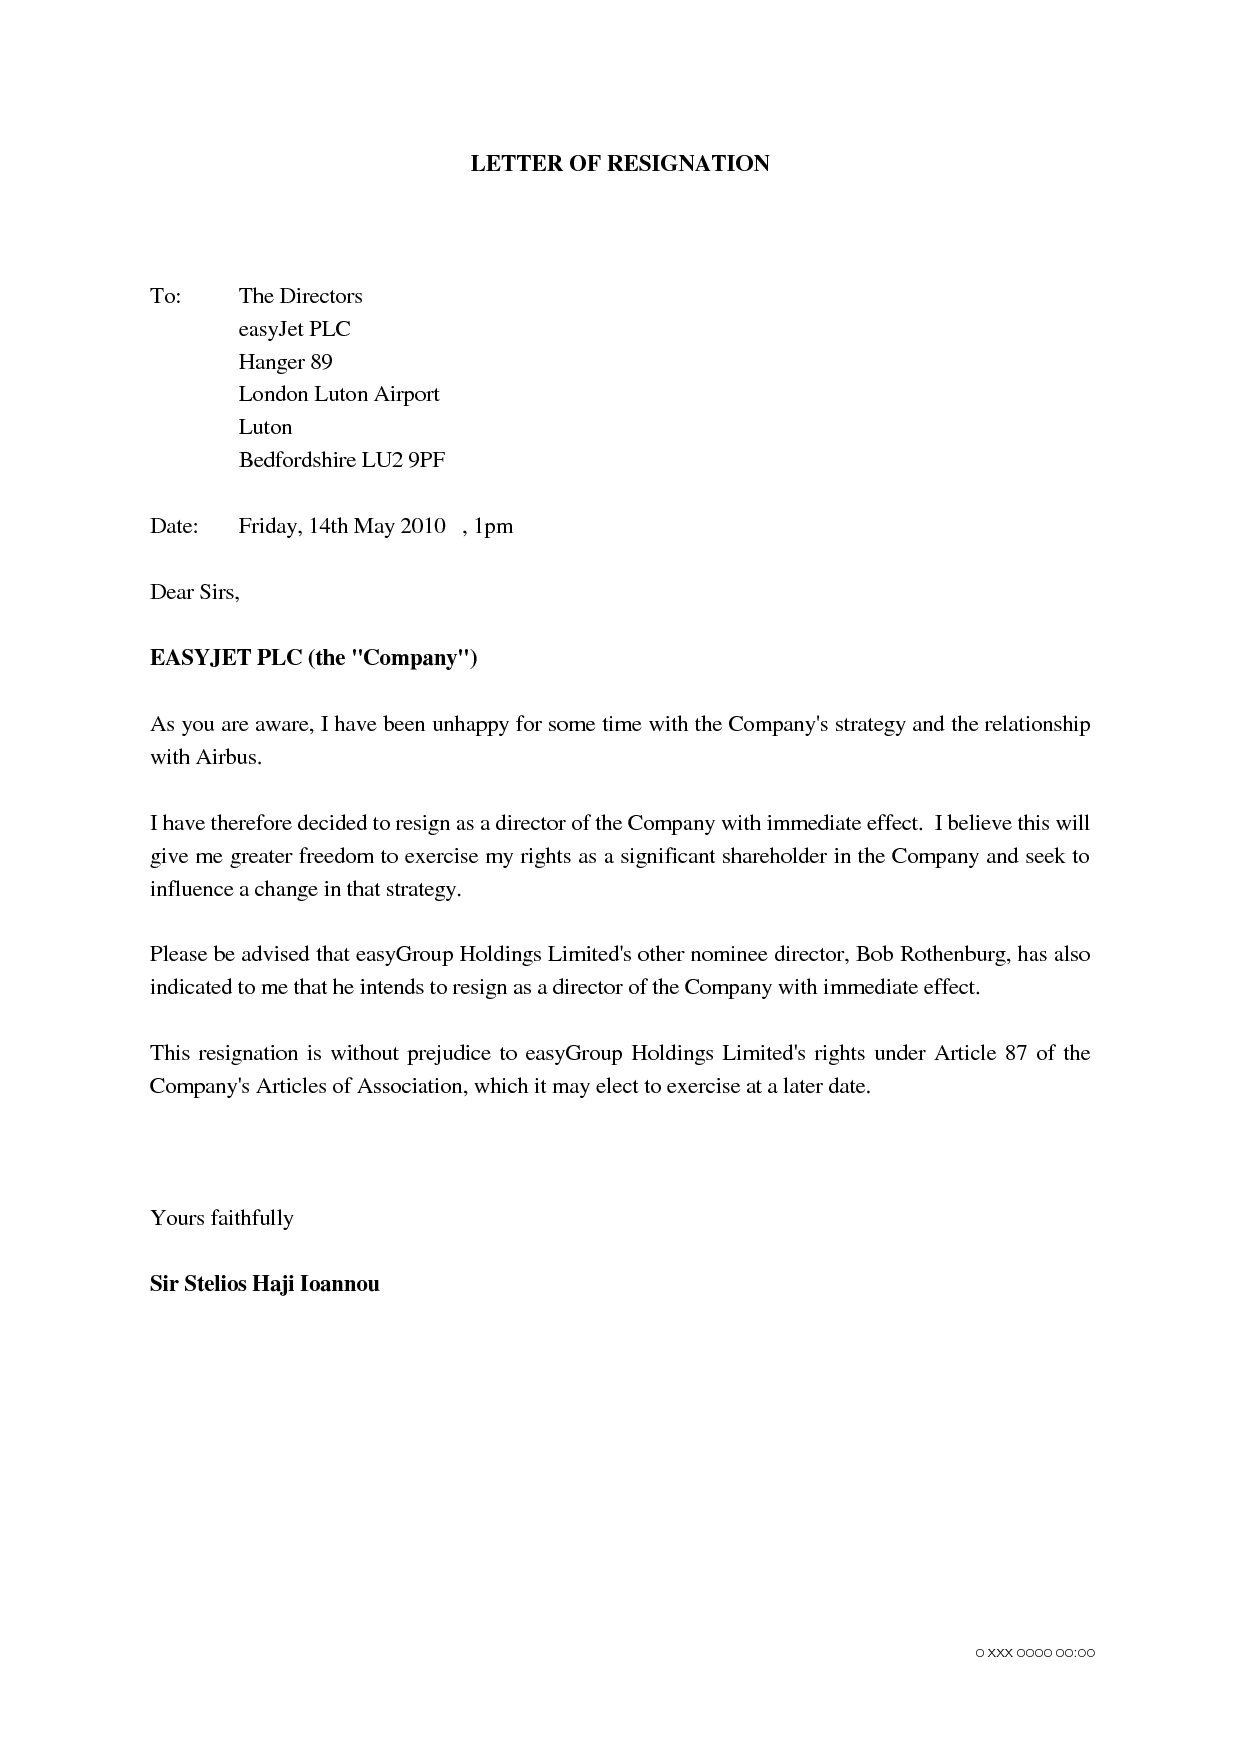 resignation letter marriage reason best online resume builder resignation letter marriage reason resignation letter for personal reason sample template sample resignation letter for marriage